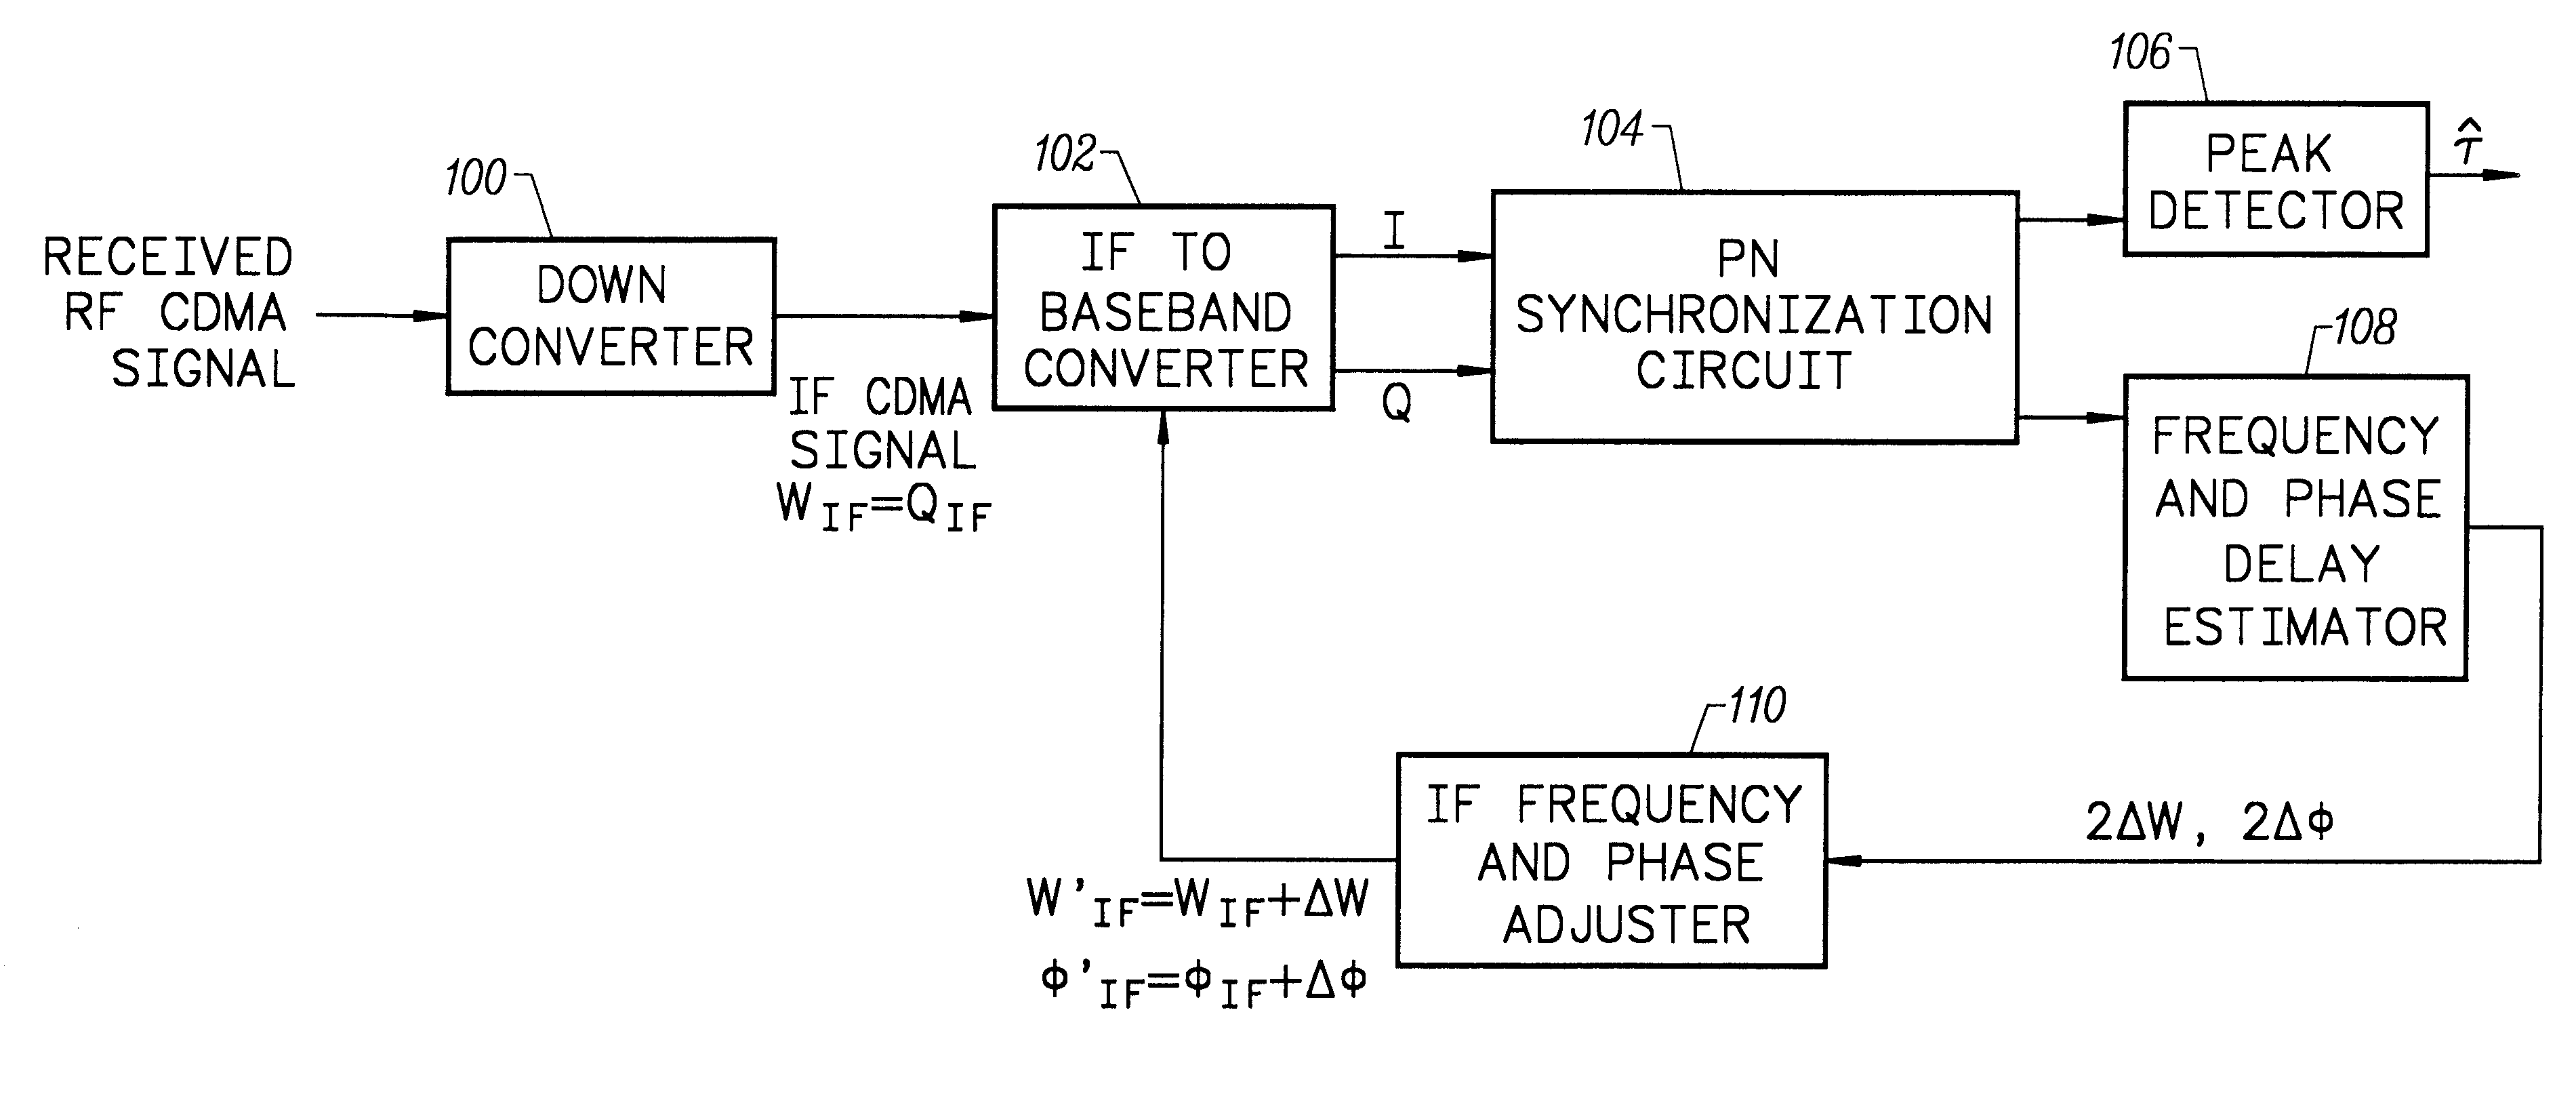 Patent US6301311 - Non-coherent, non-data-aided pseudo-noise